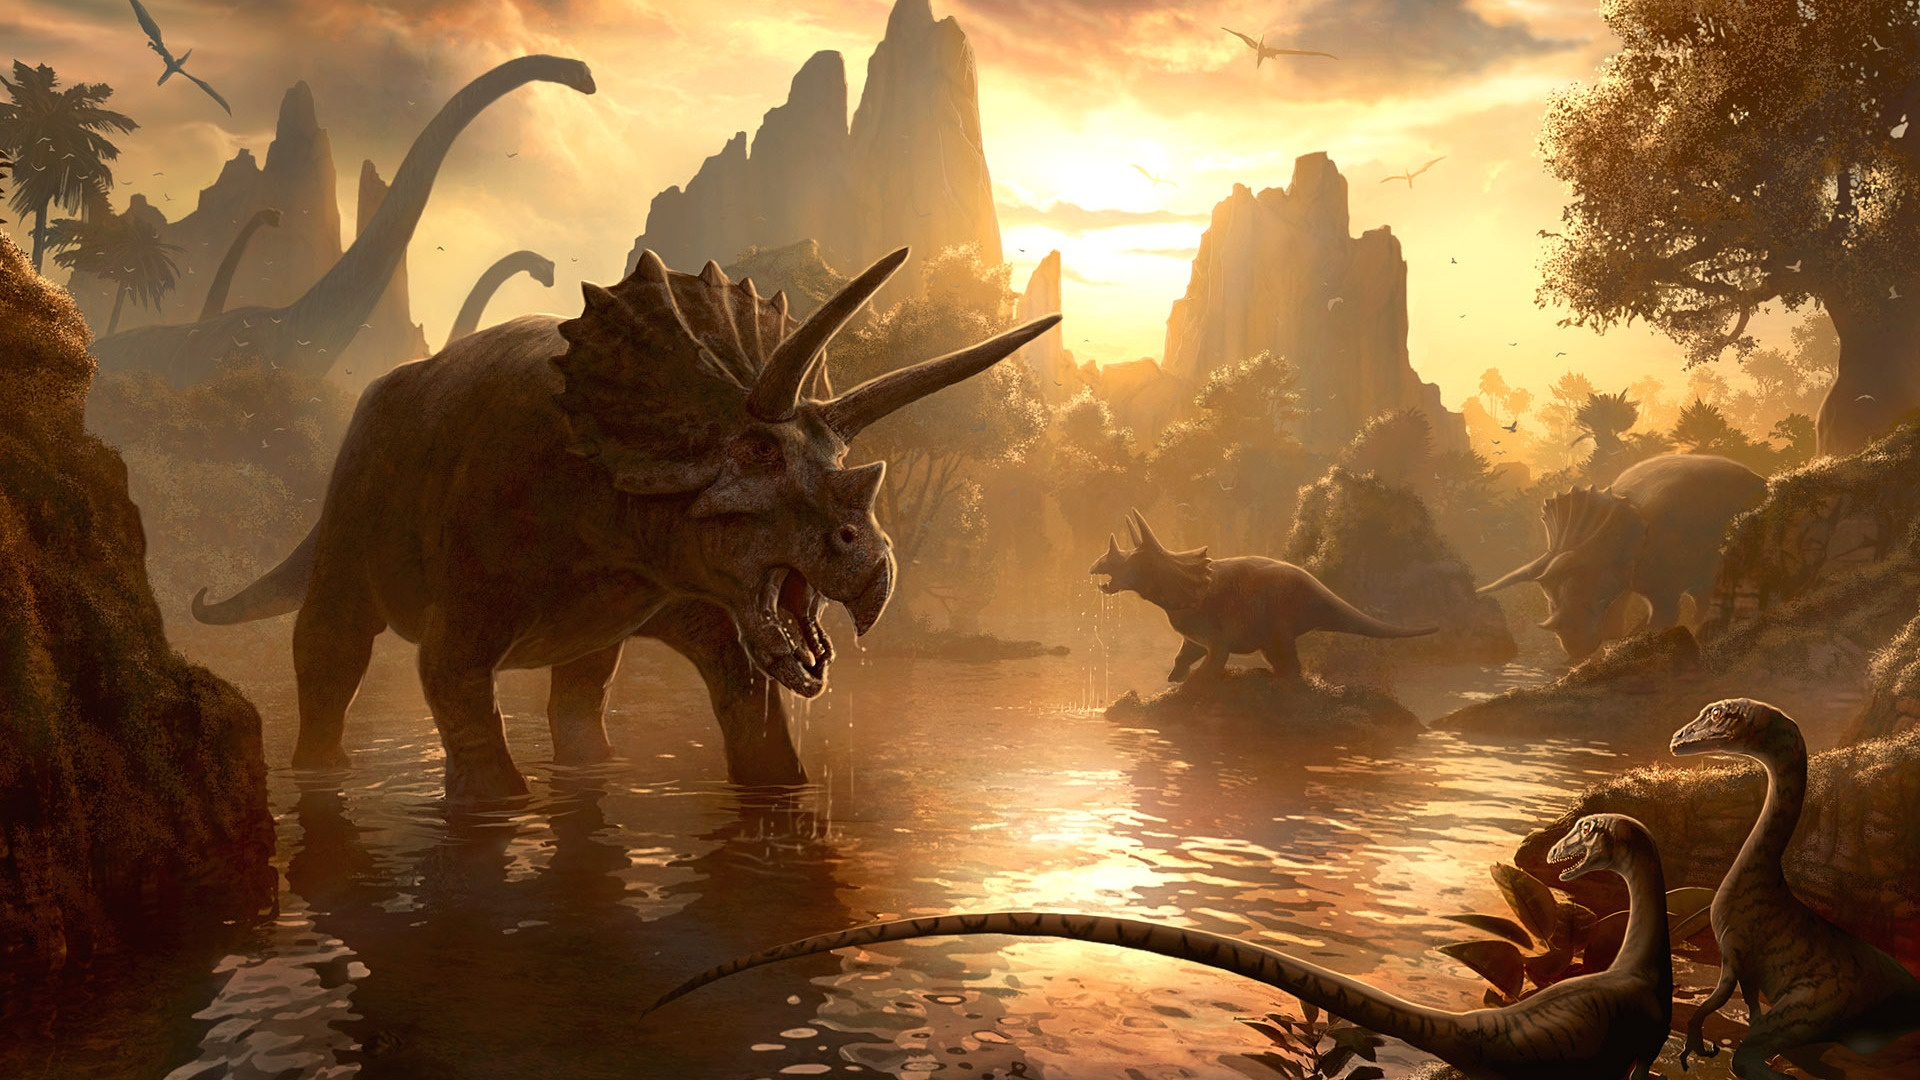 Dinosaurs at the watering hole wallpaper